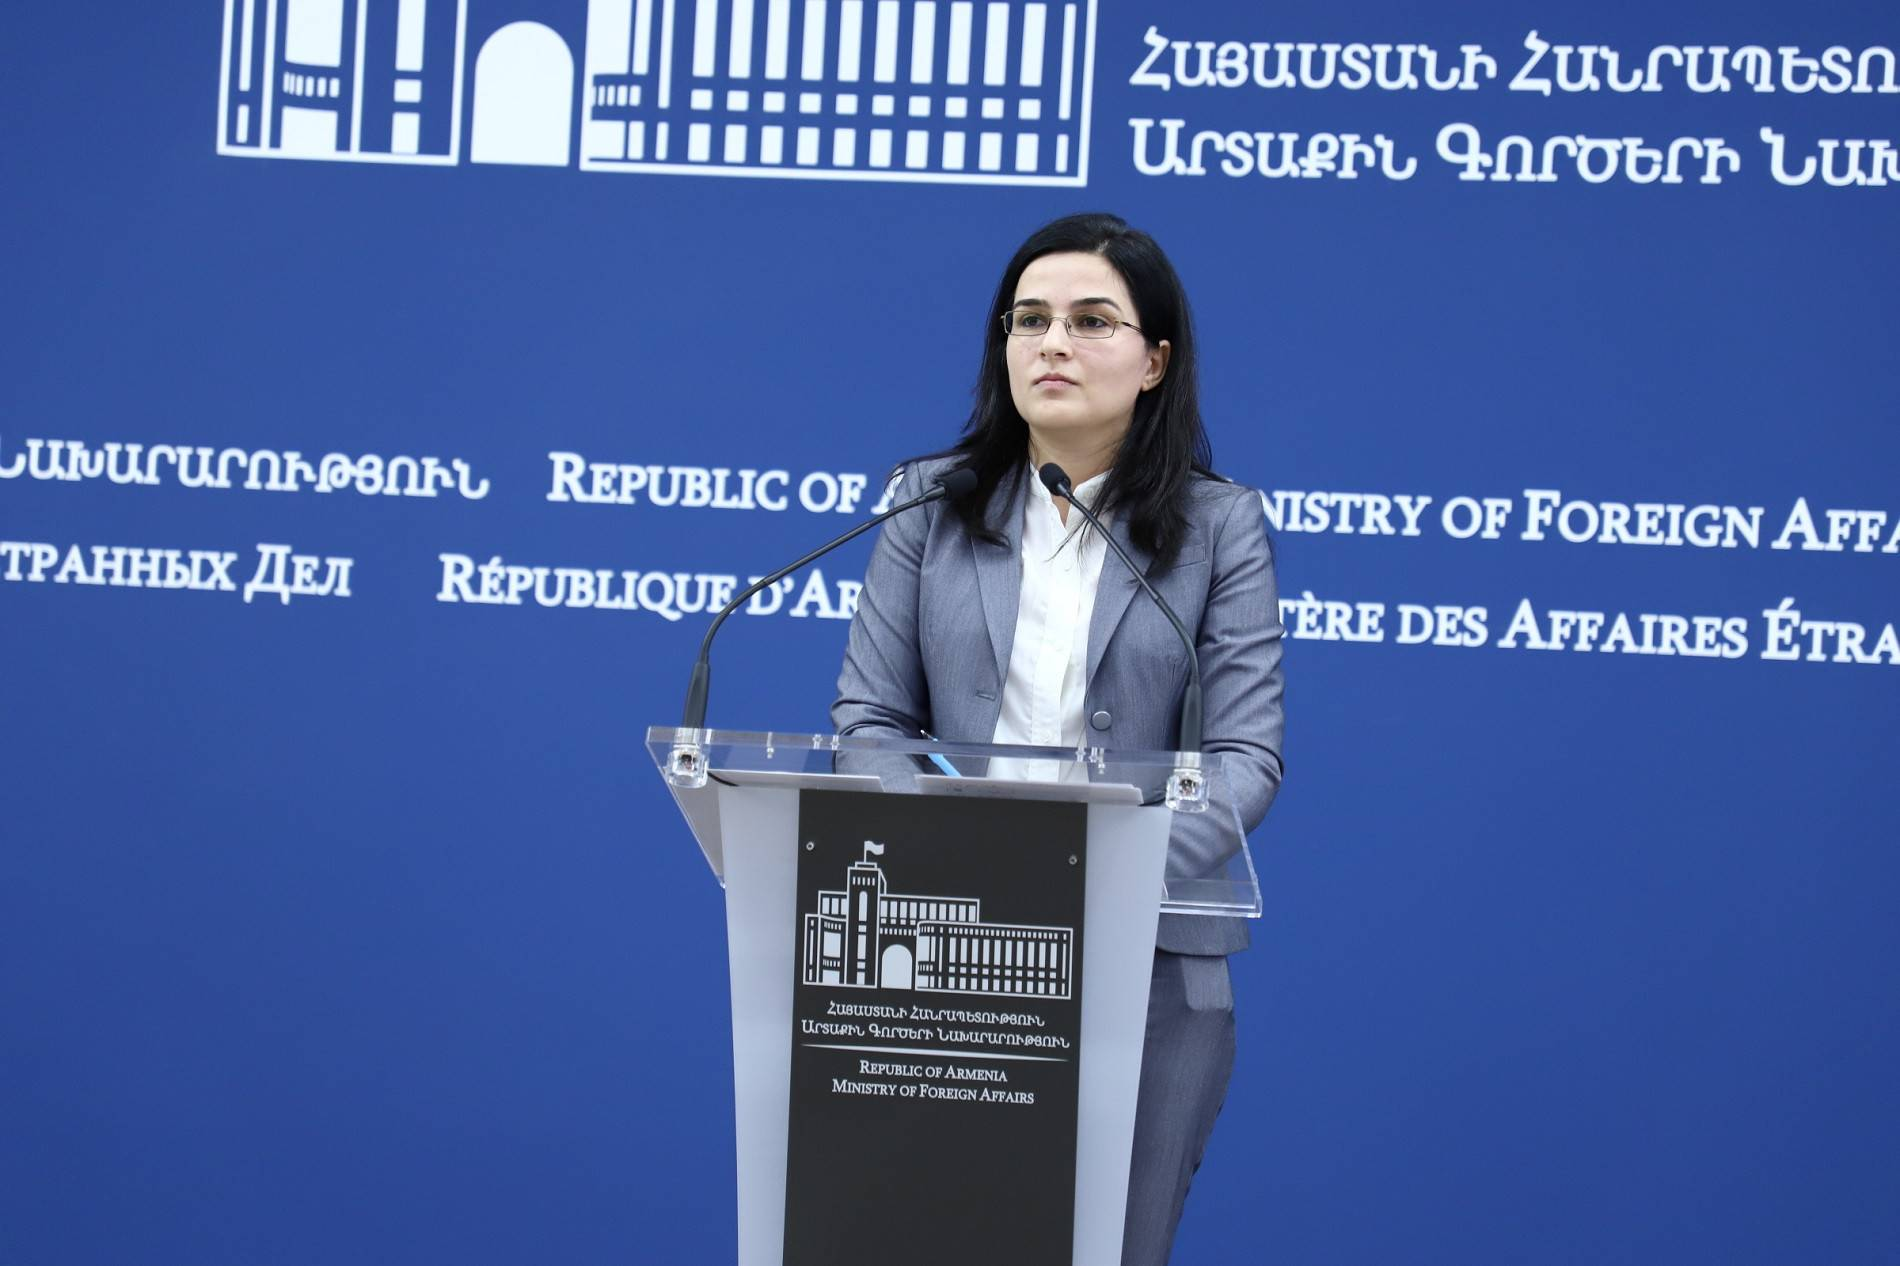 Response of the Spokesperson of the MFA on the mutual understandings reached in Milan